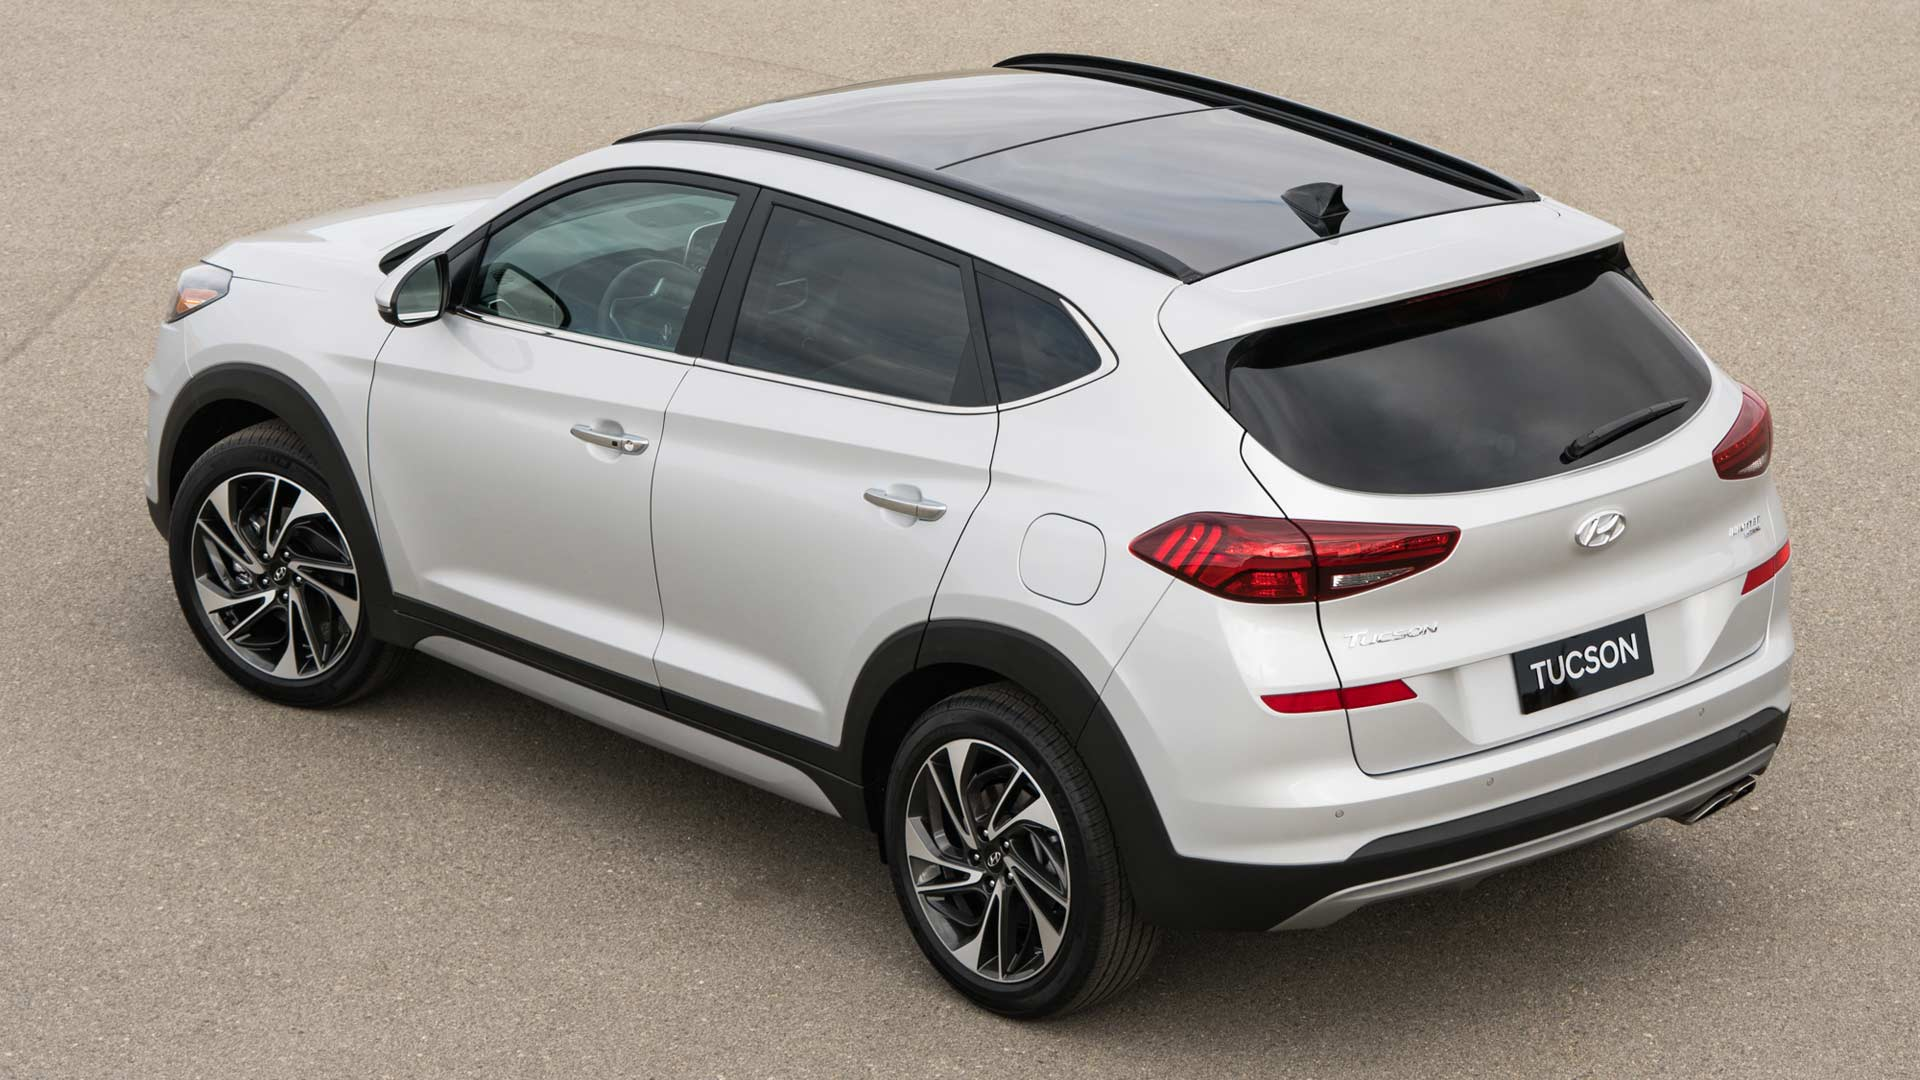 2019 hyundai tucson gets refreshed exterior and more equipment autodevot. Black Bedroom Furniture Sets. Home Design Ideas